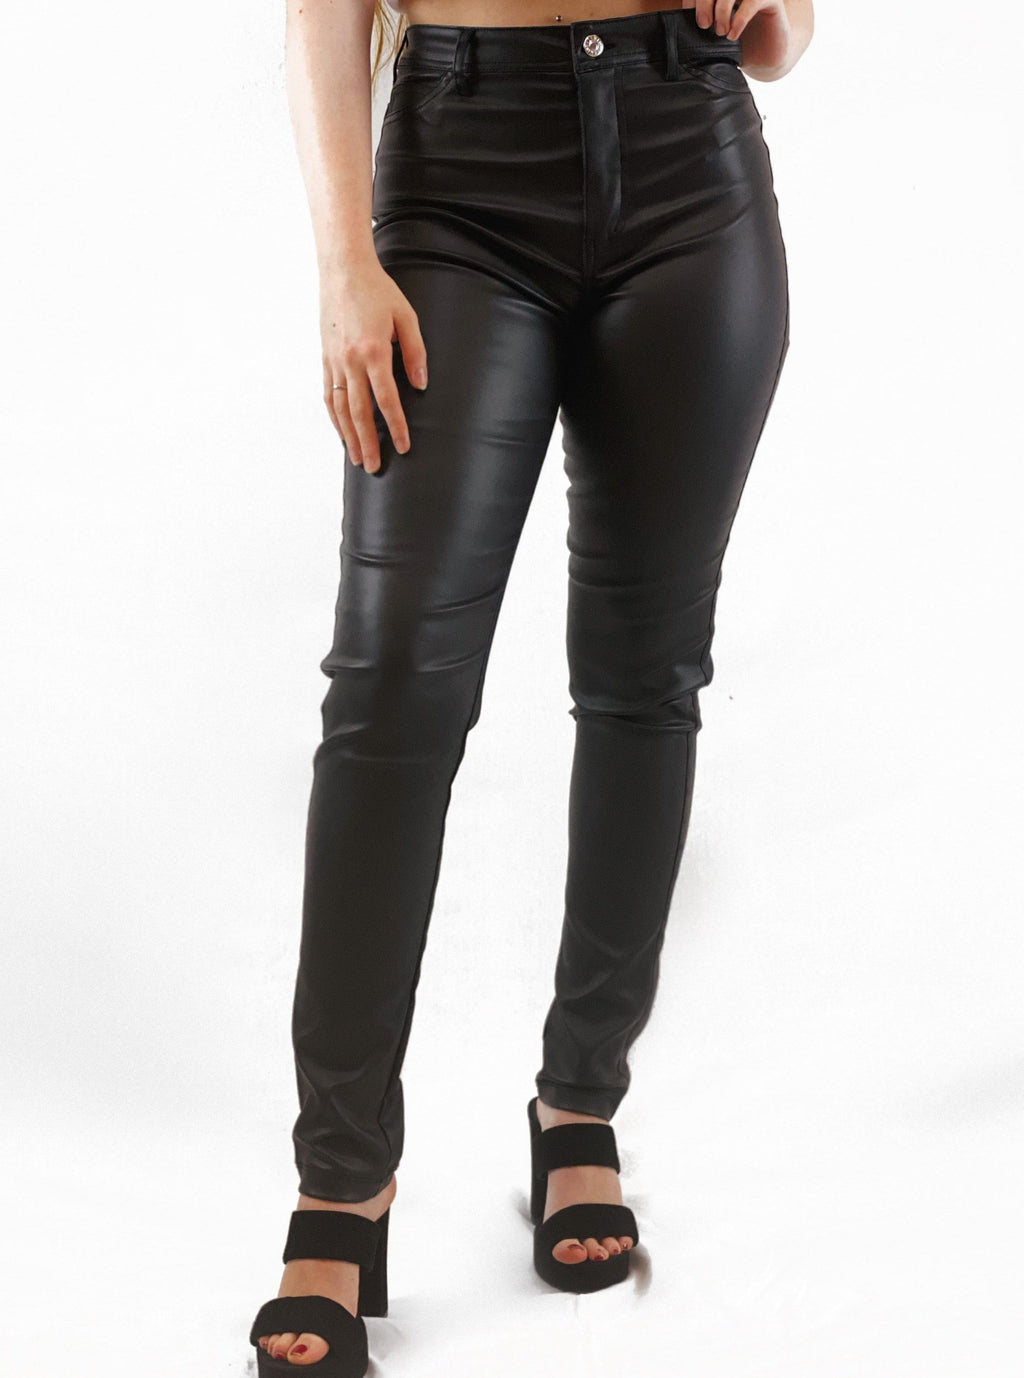 Faux Leather Pants - bigcityboutique